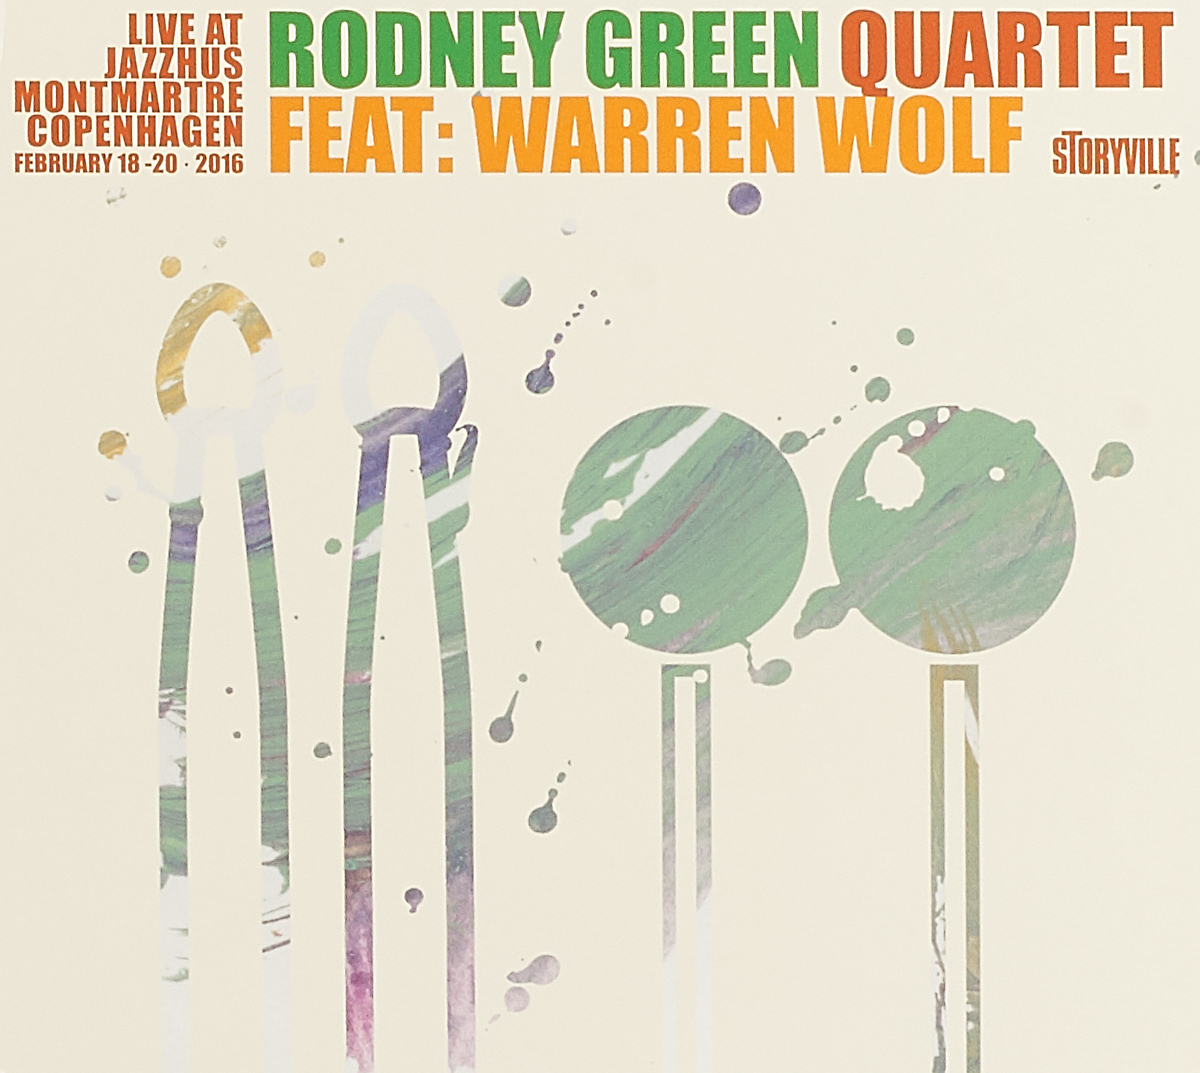 Rodney Green Quartet,Wolf Warren Rodney Green Quartet Feat Wolf Warren. Live At Jazzhus Montmartre Copenhagen rodney st michael st michael rodney sync my world thief s honor ga sk paperback edition